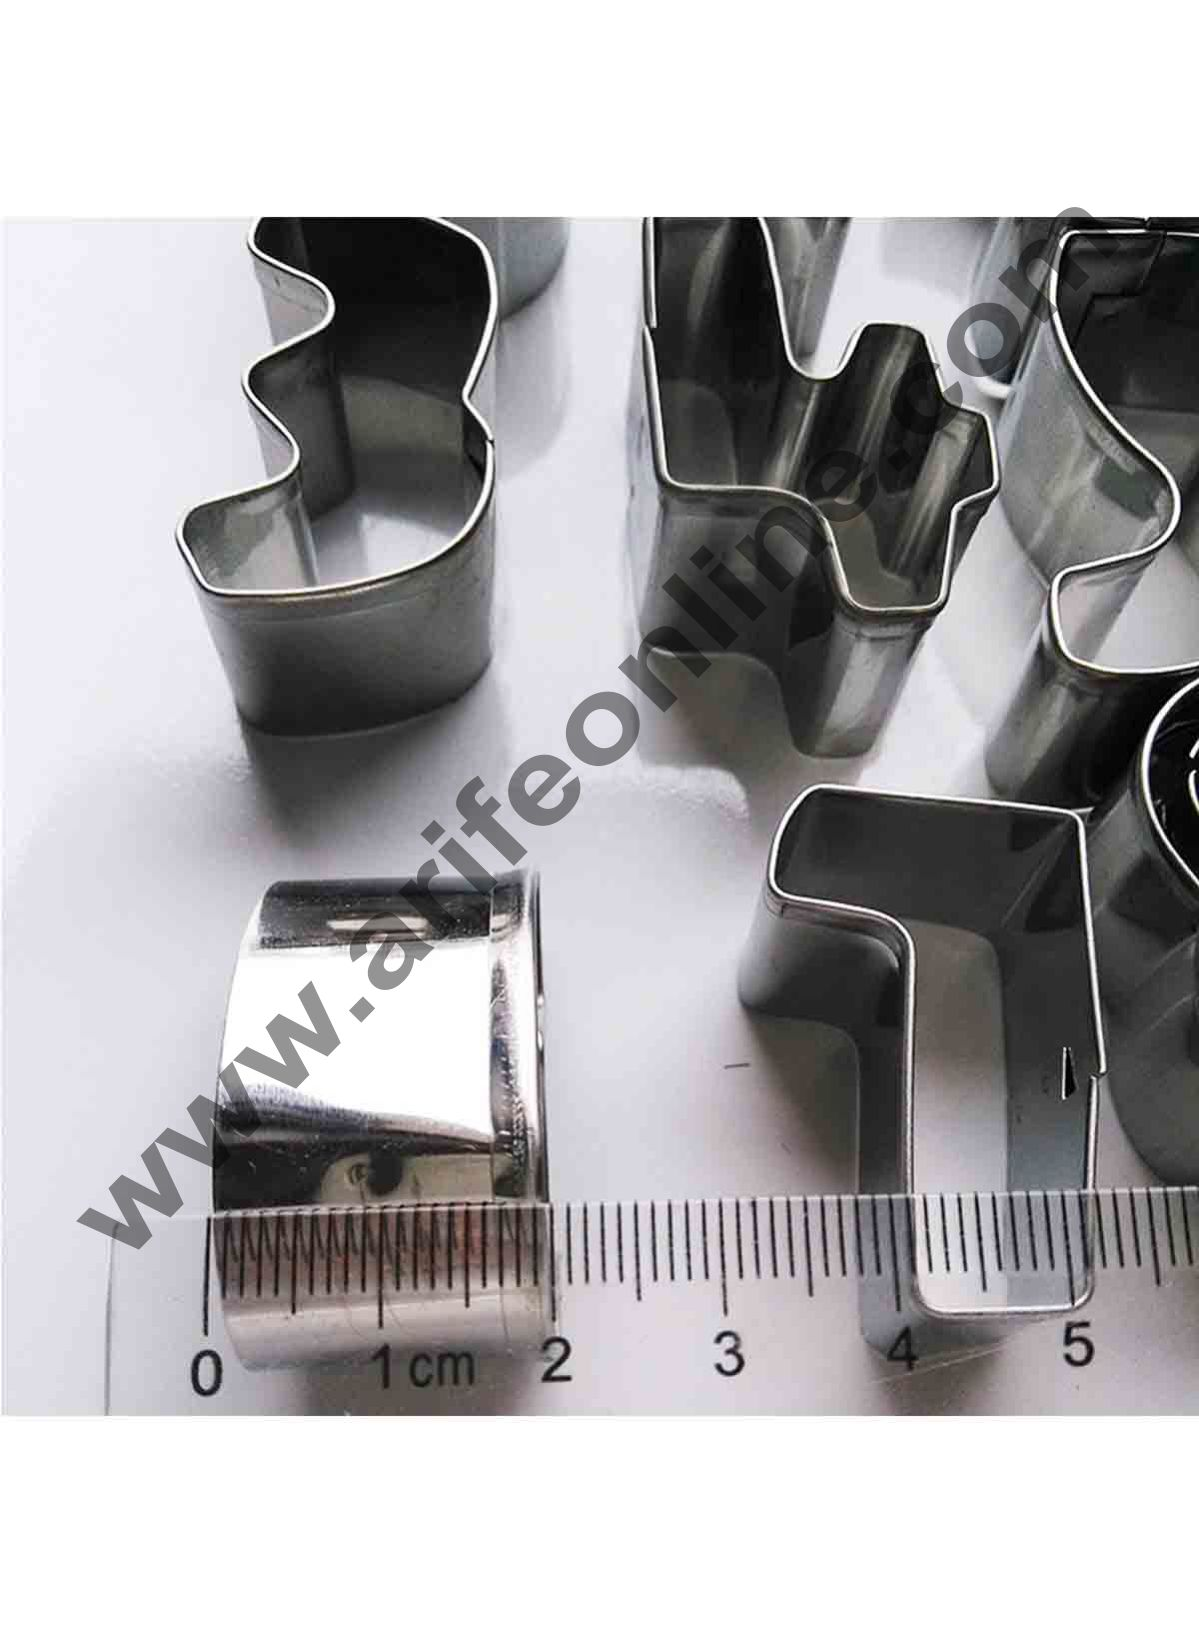 Cake Decor 0 To 8 New Numbers Shape Cookie Cutter Bakeware Mould Biscuit Mould Set Sugar Arts Fondant Cake Decoration Tools